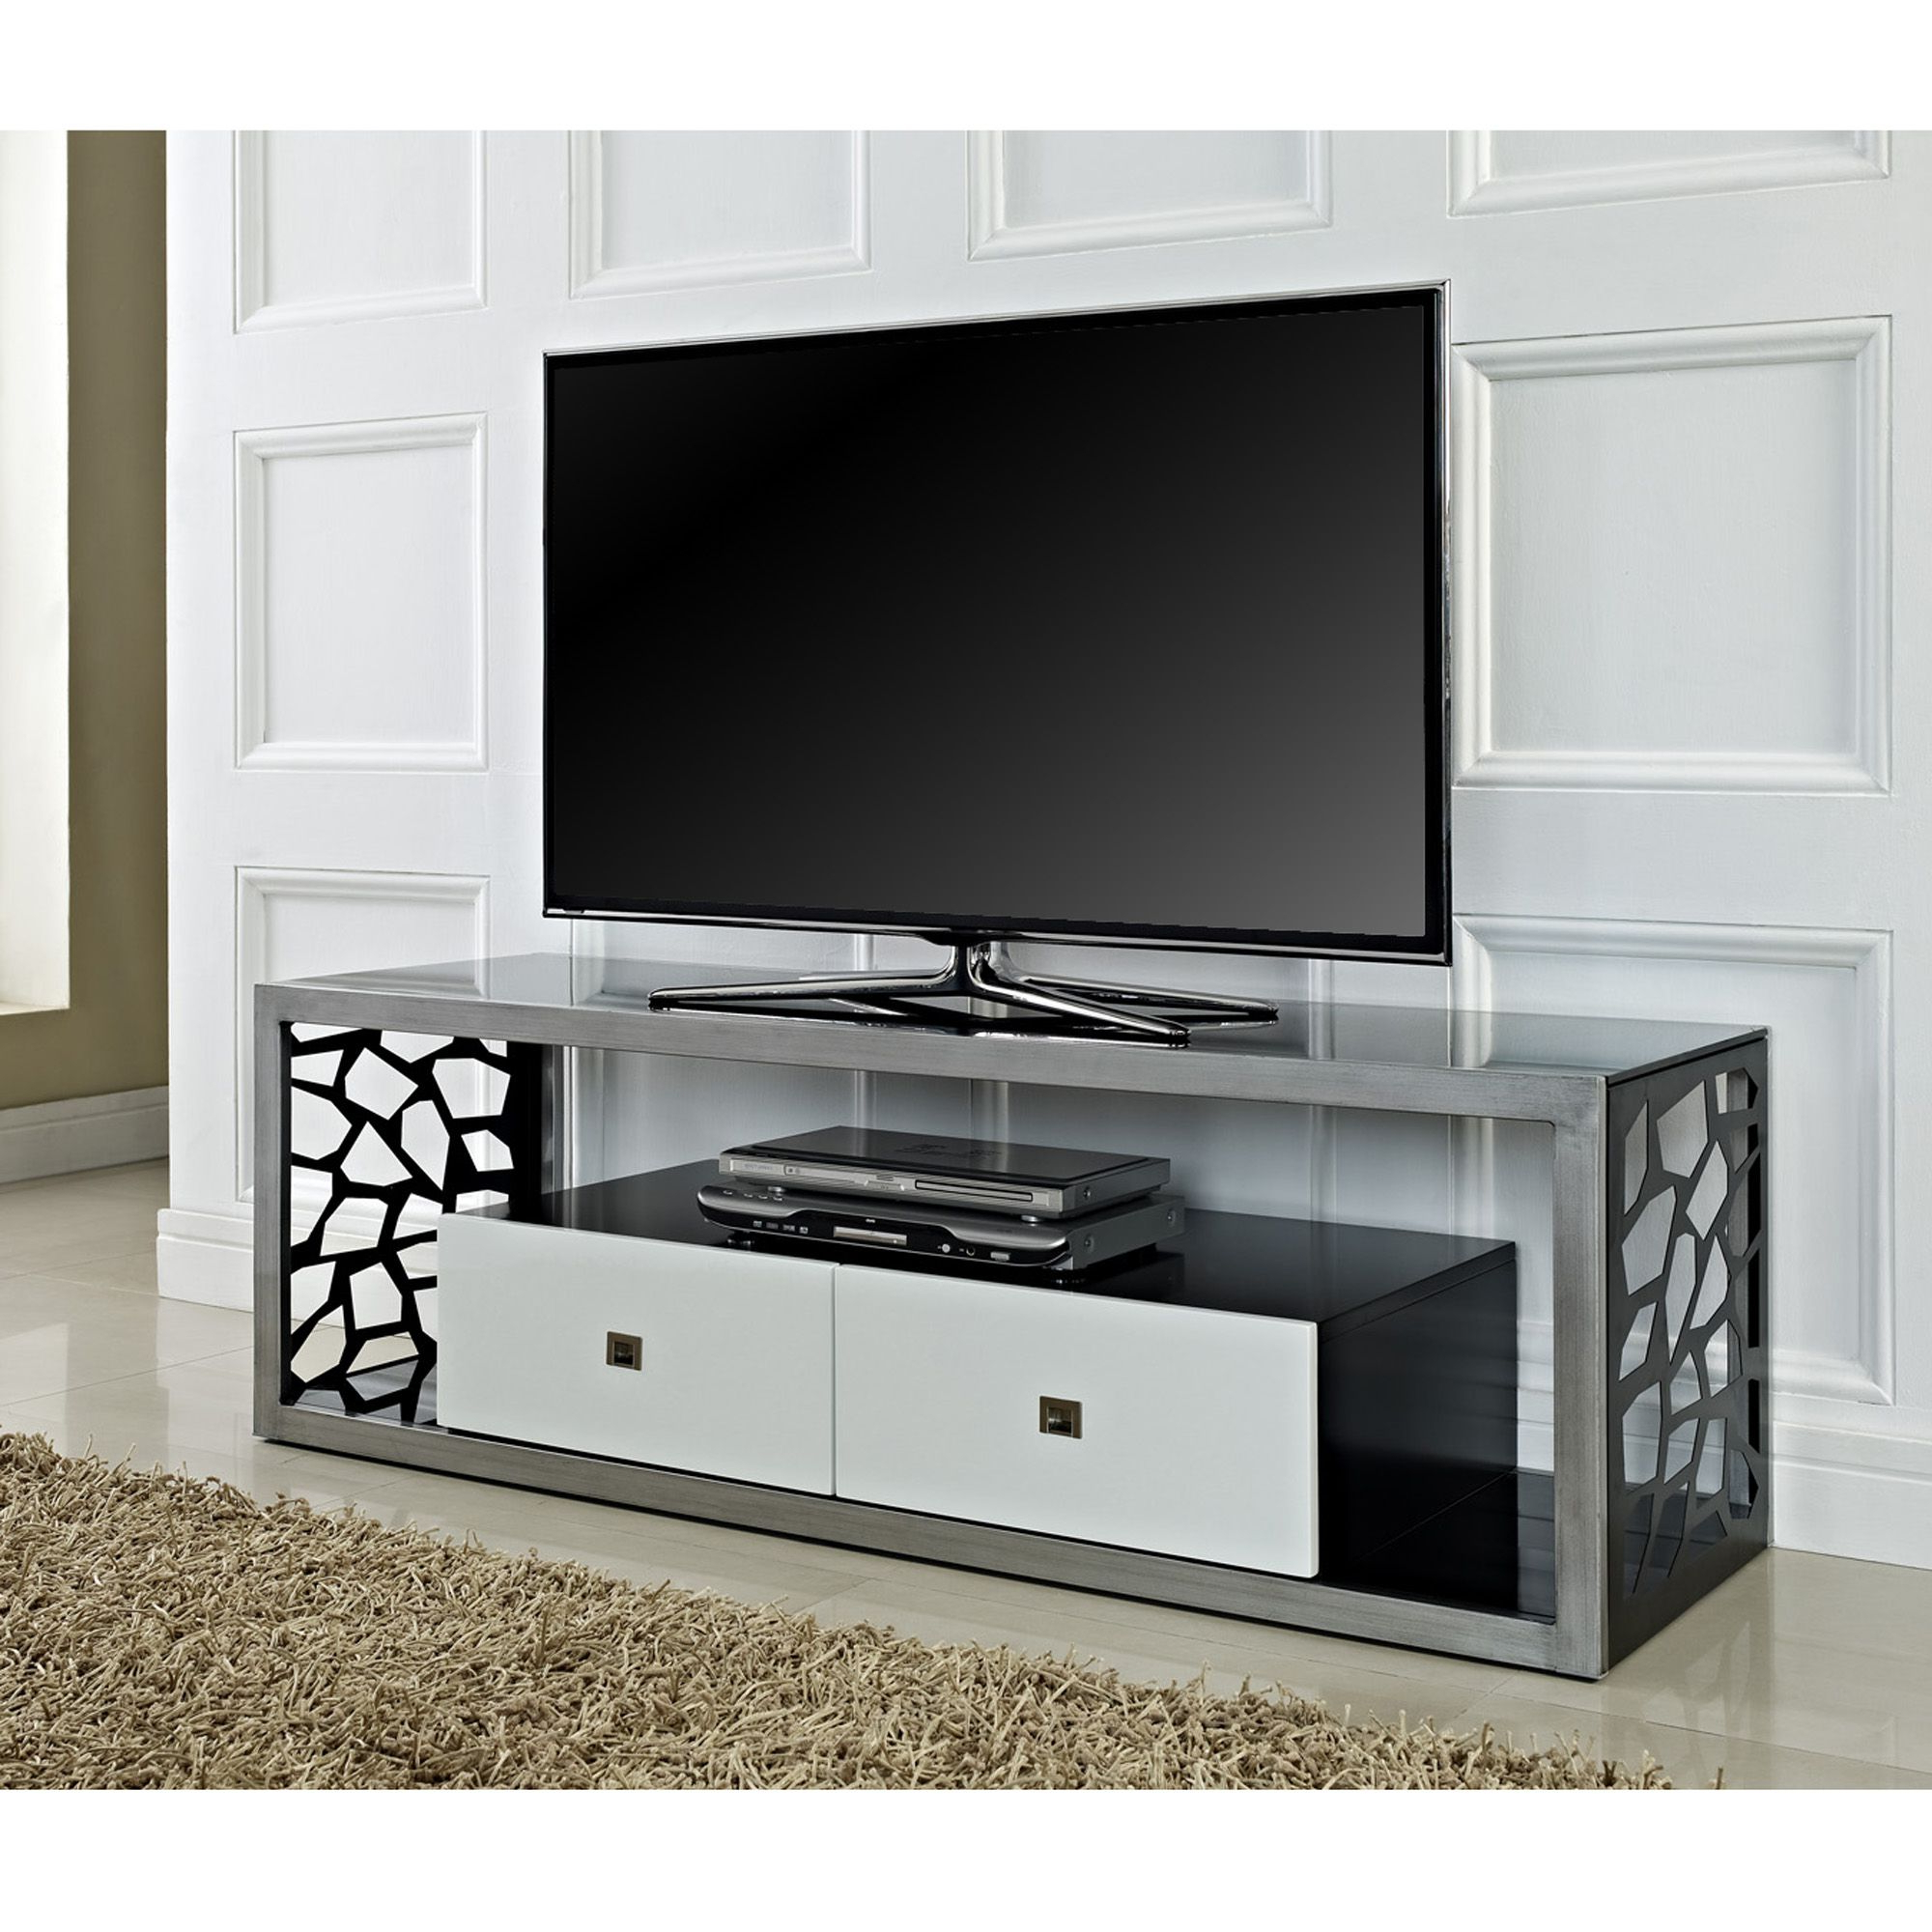 """Most Recent Rowan 45 Inch Tv Stands Within Beautiful 60"""" Mosaic Tv Stand, Brushed Silver Frame With White (Gallery 2 of 20)"""